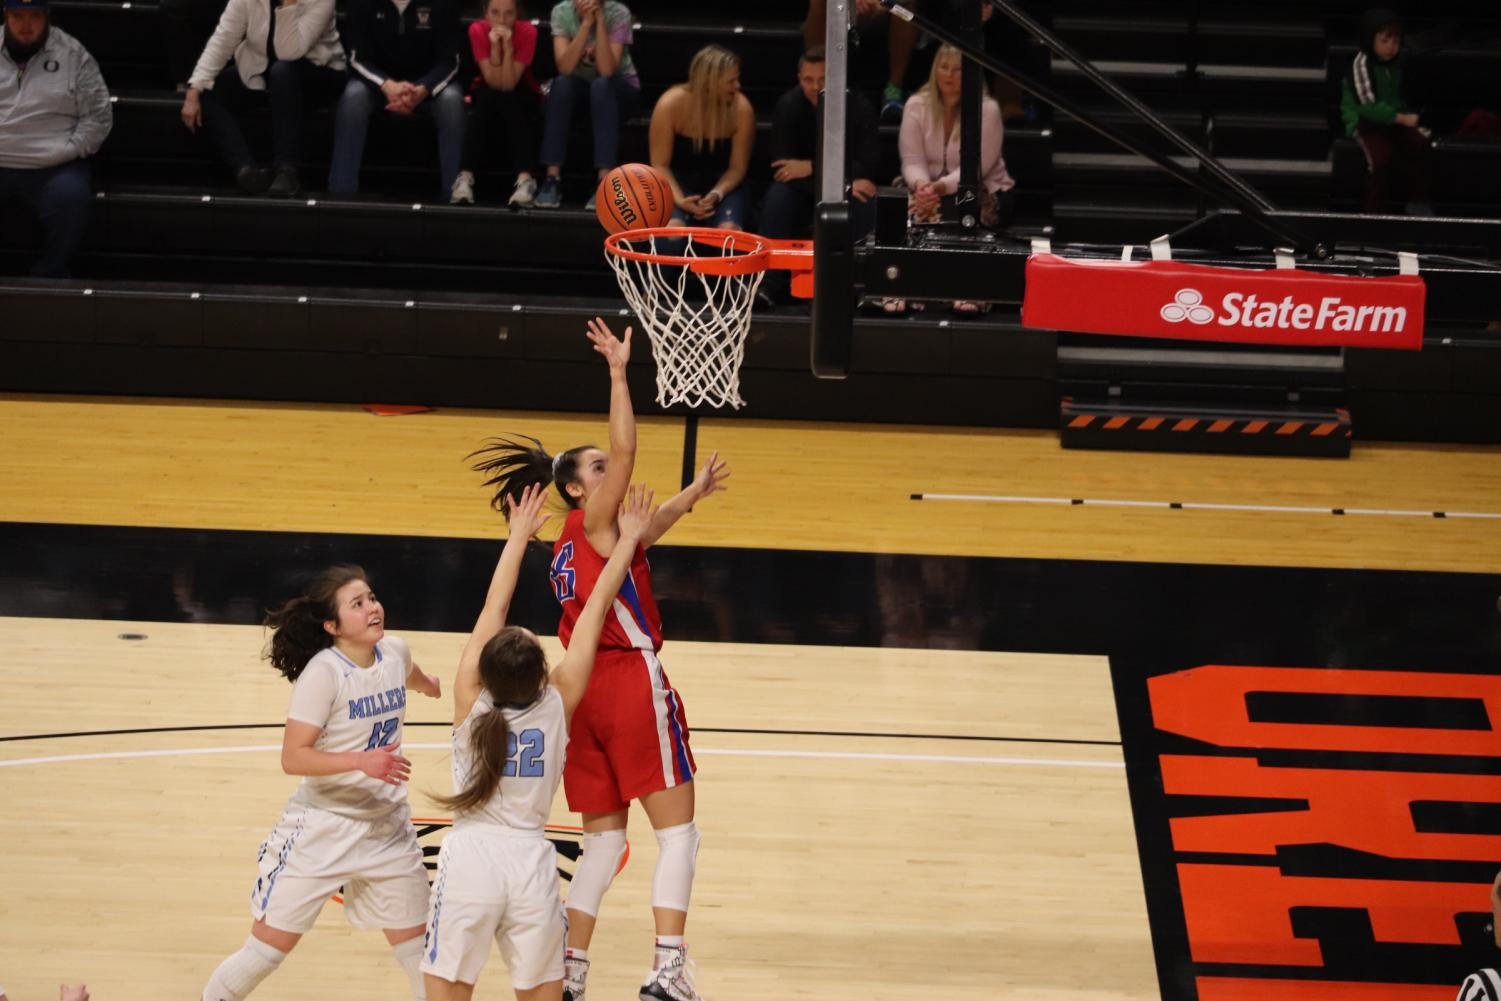 Miura+lands+a+twisted+layup+after+finessing+her+way+through+several+Springfield+defenders.